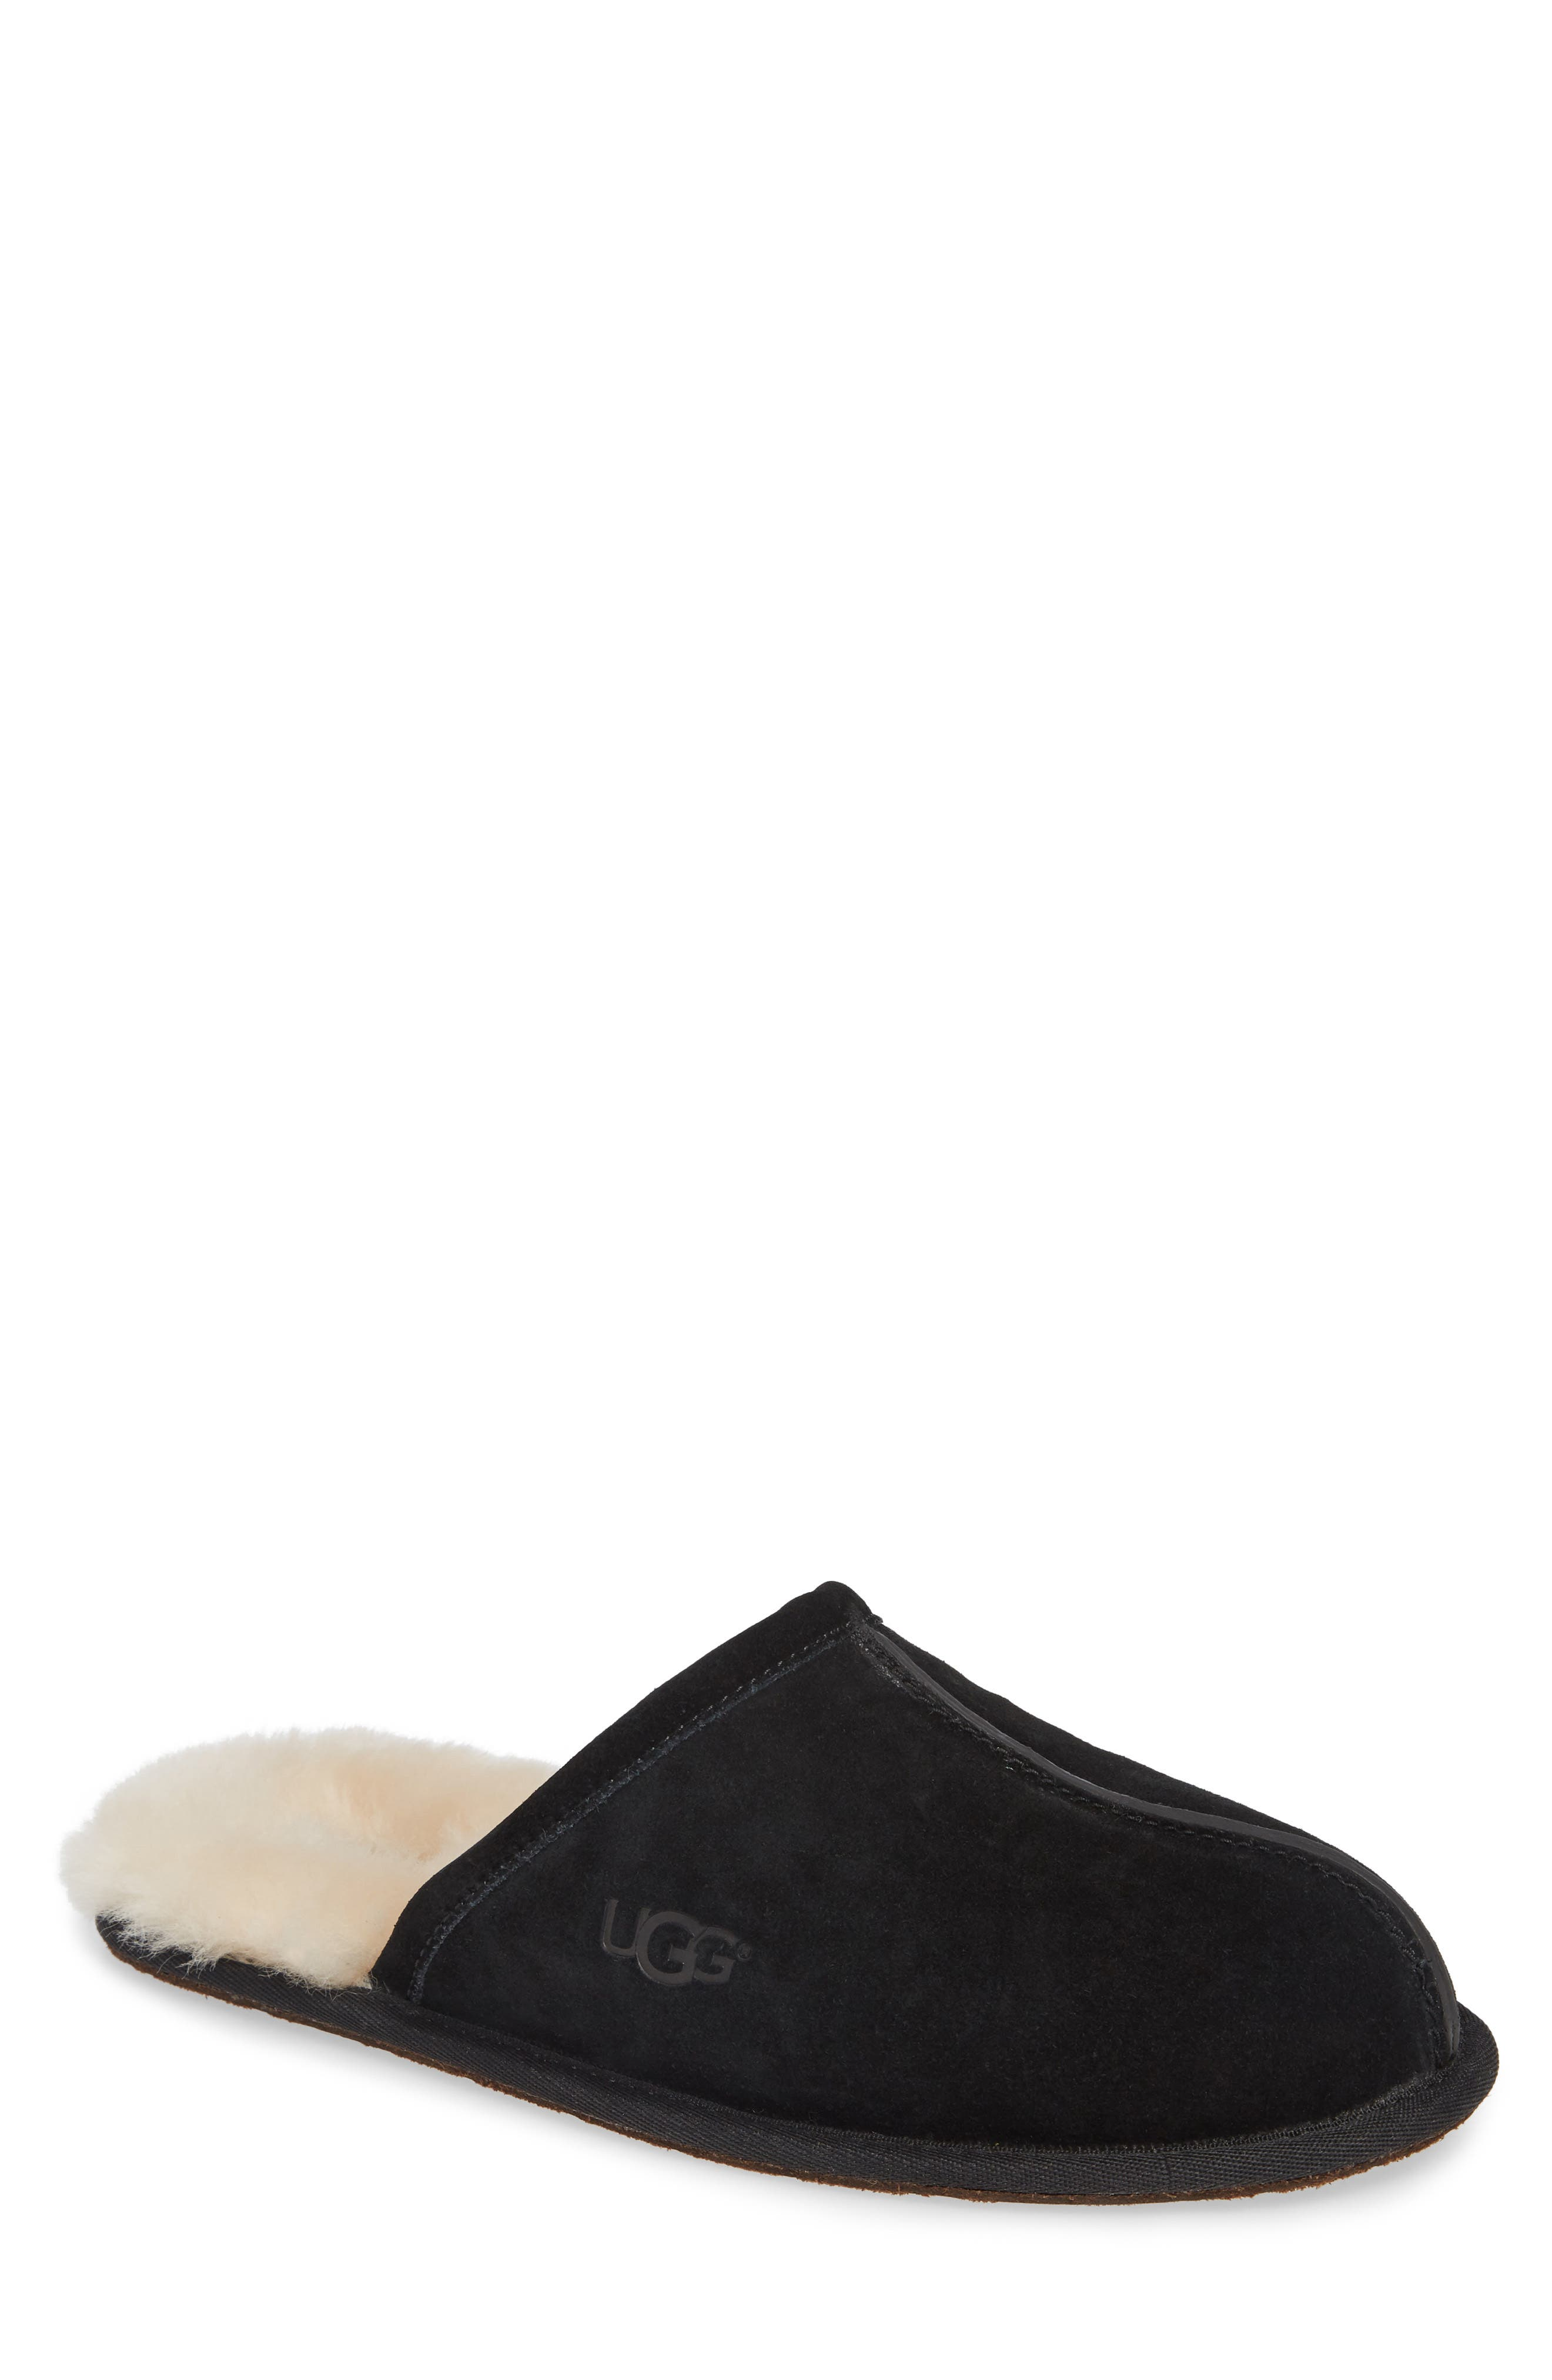 UGG<SUP>®</SUP> Scuff Slipper, Main, color, BLACK SUEDE